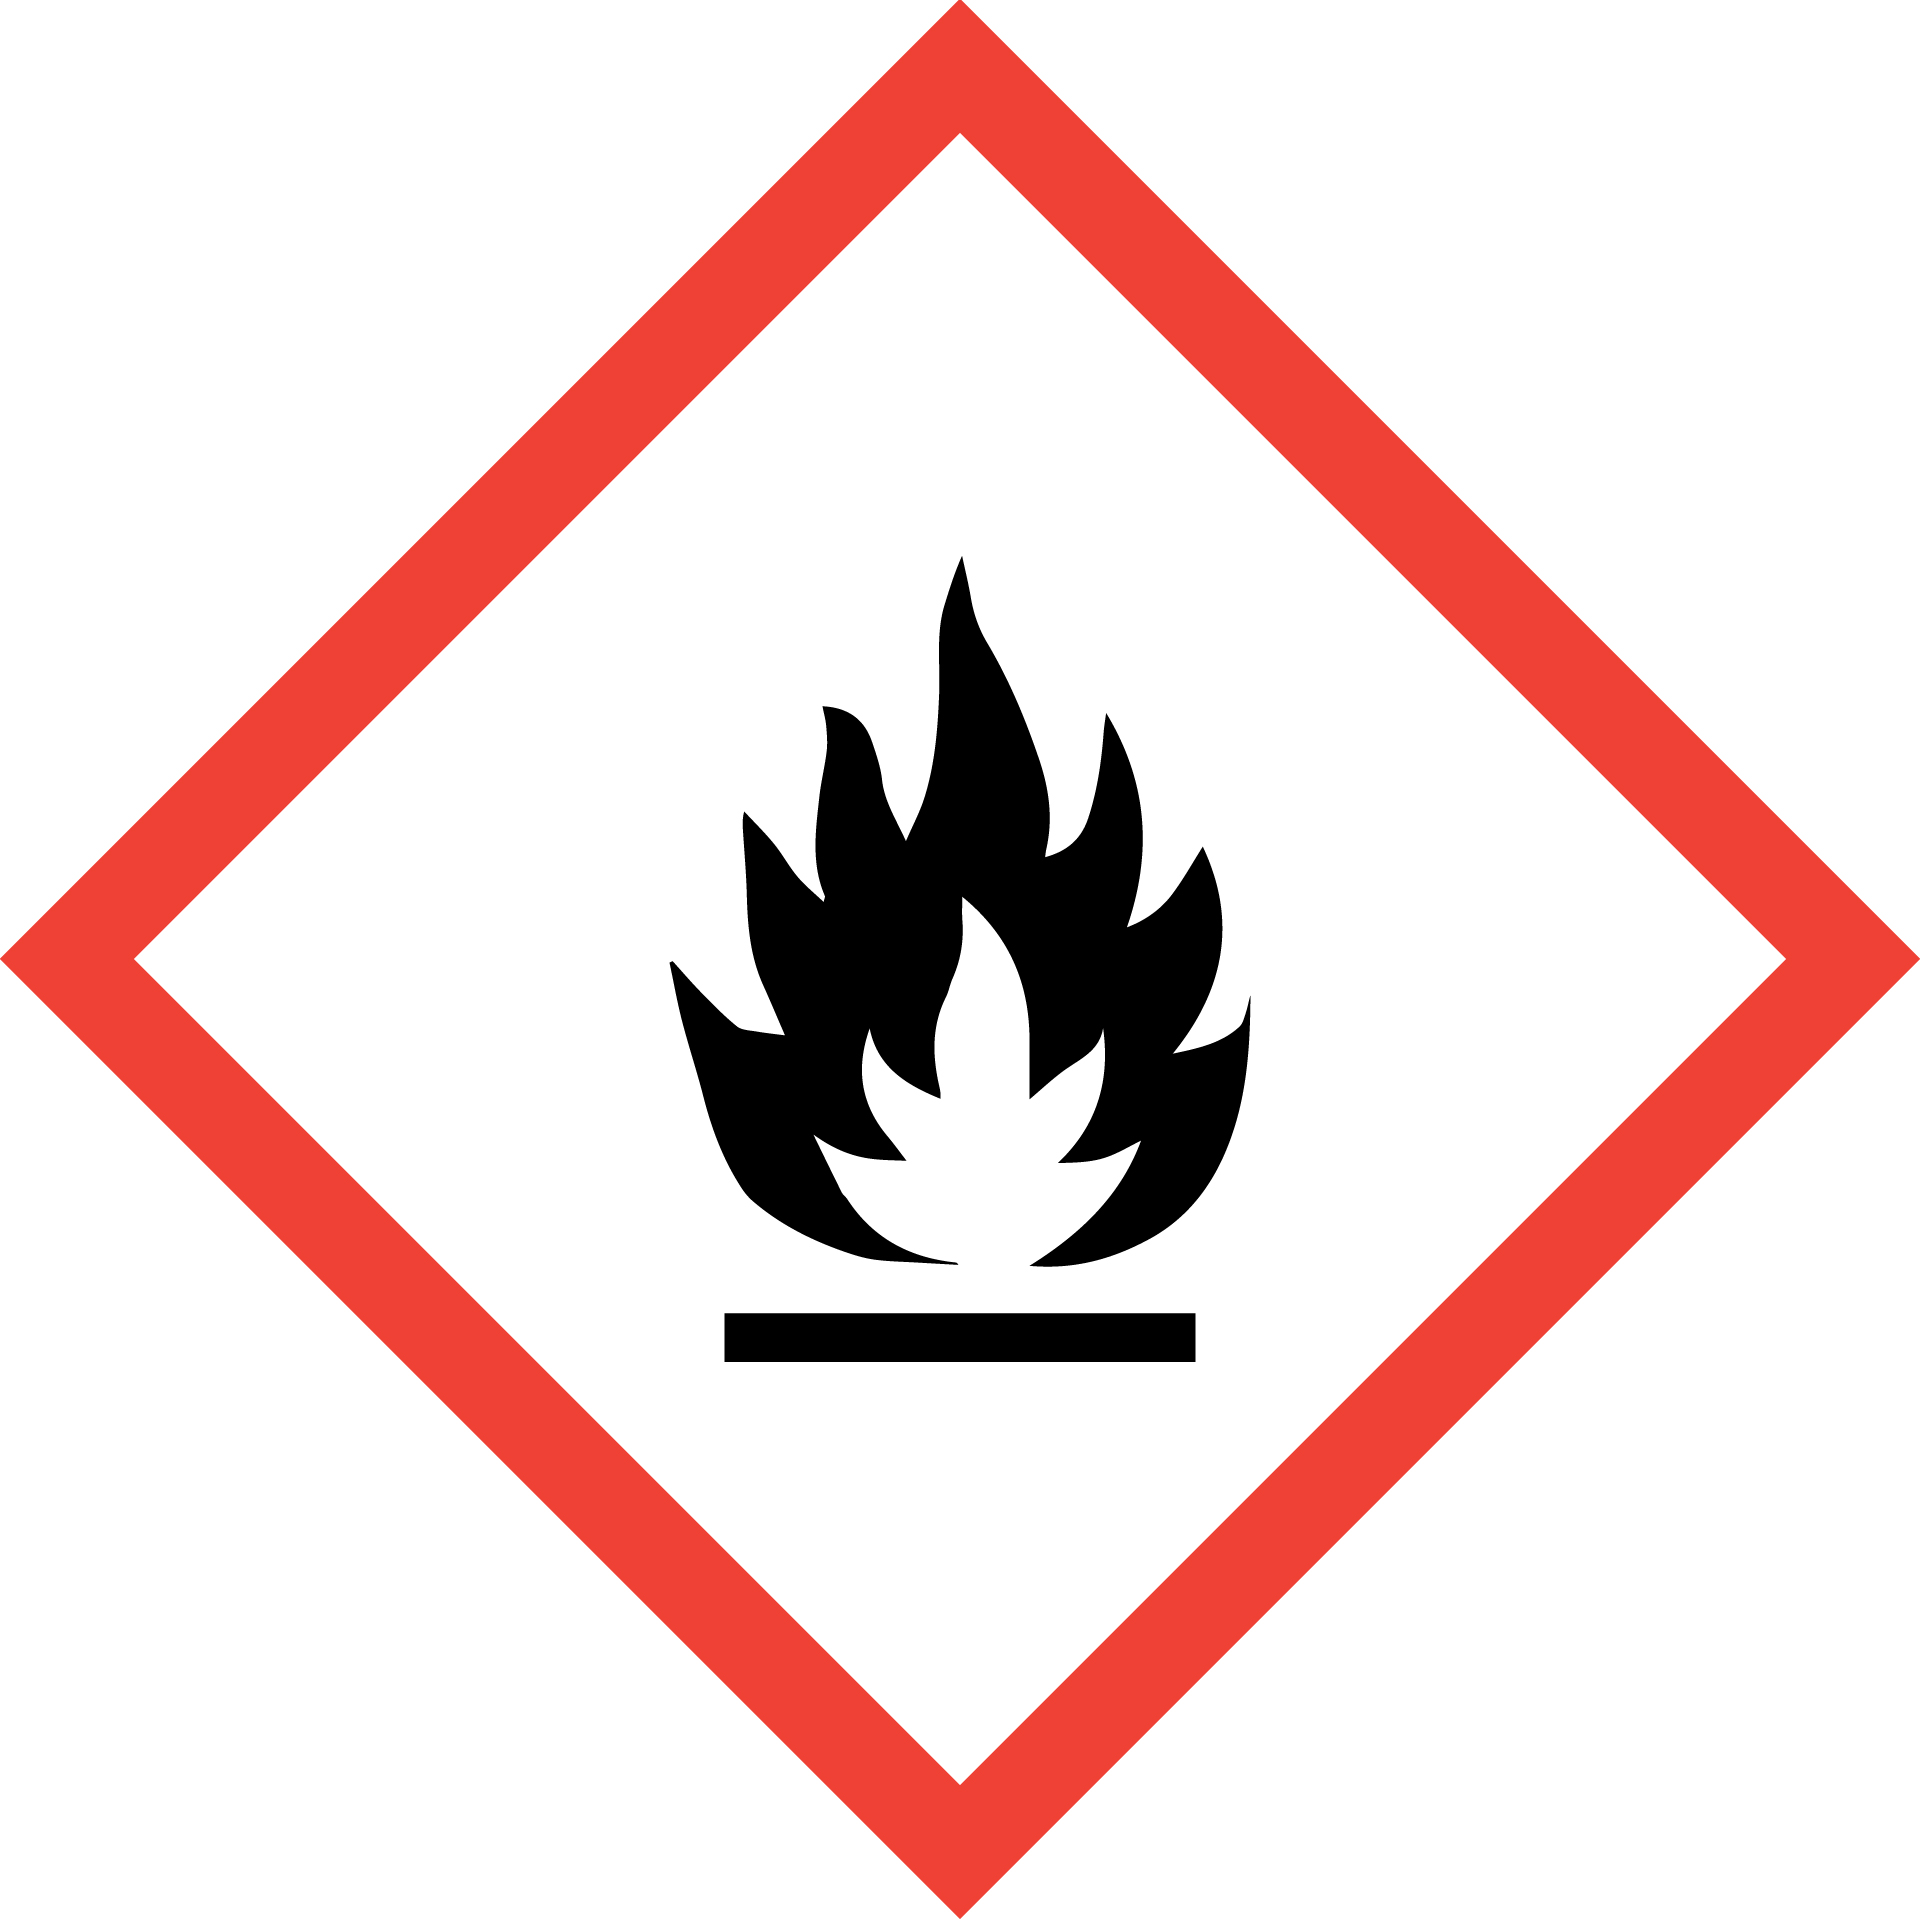 Chemical symbol for flammable